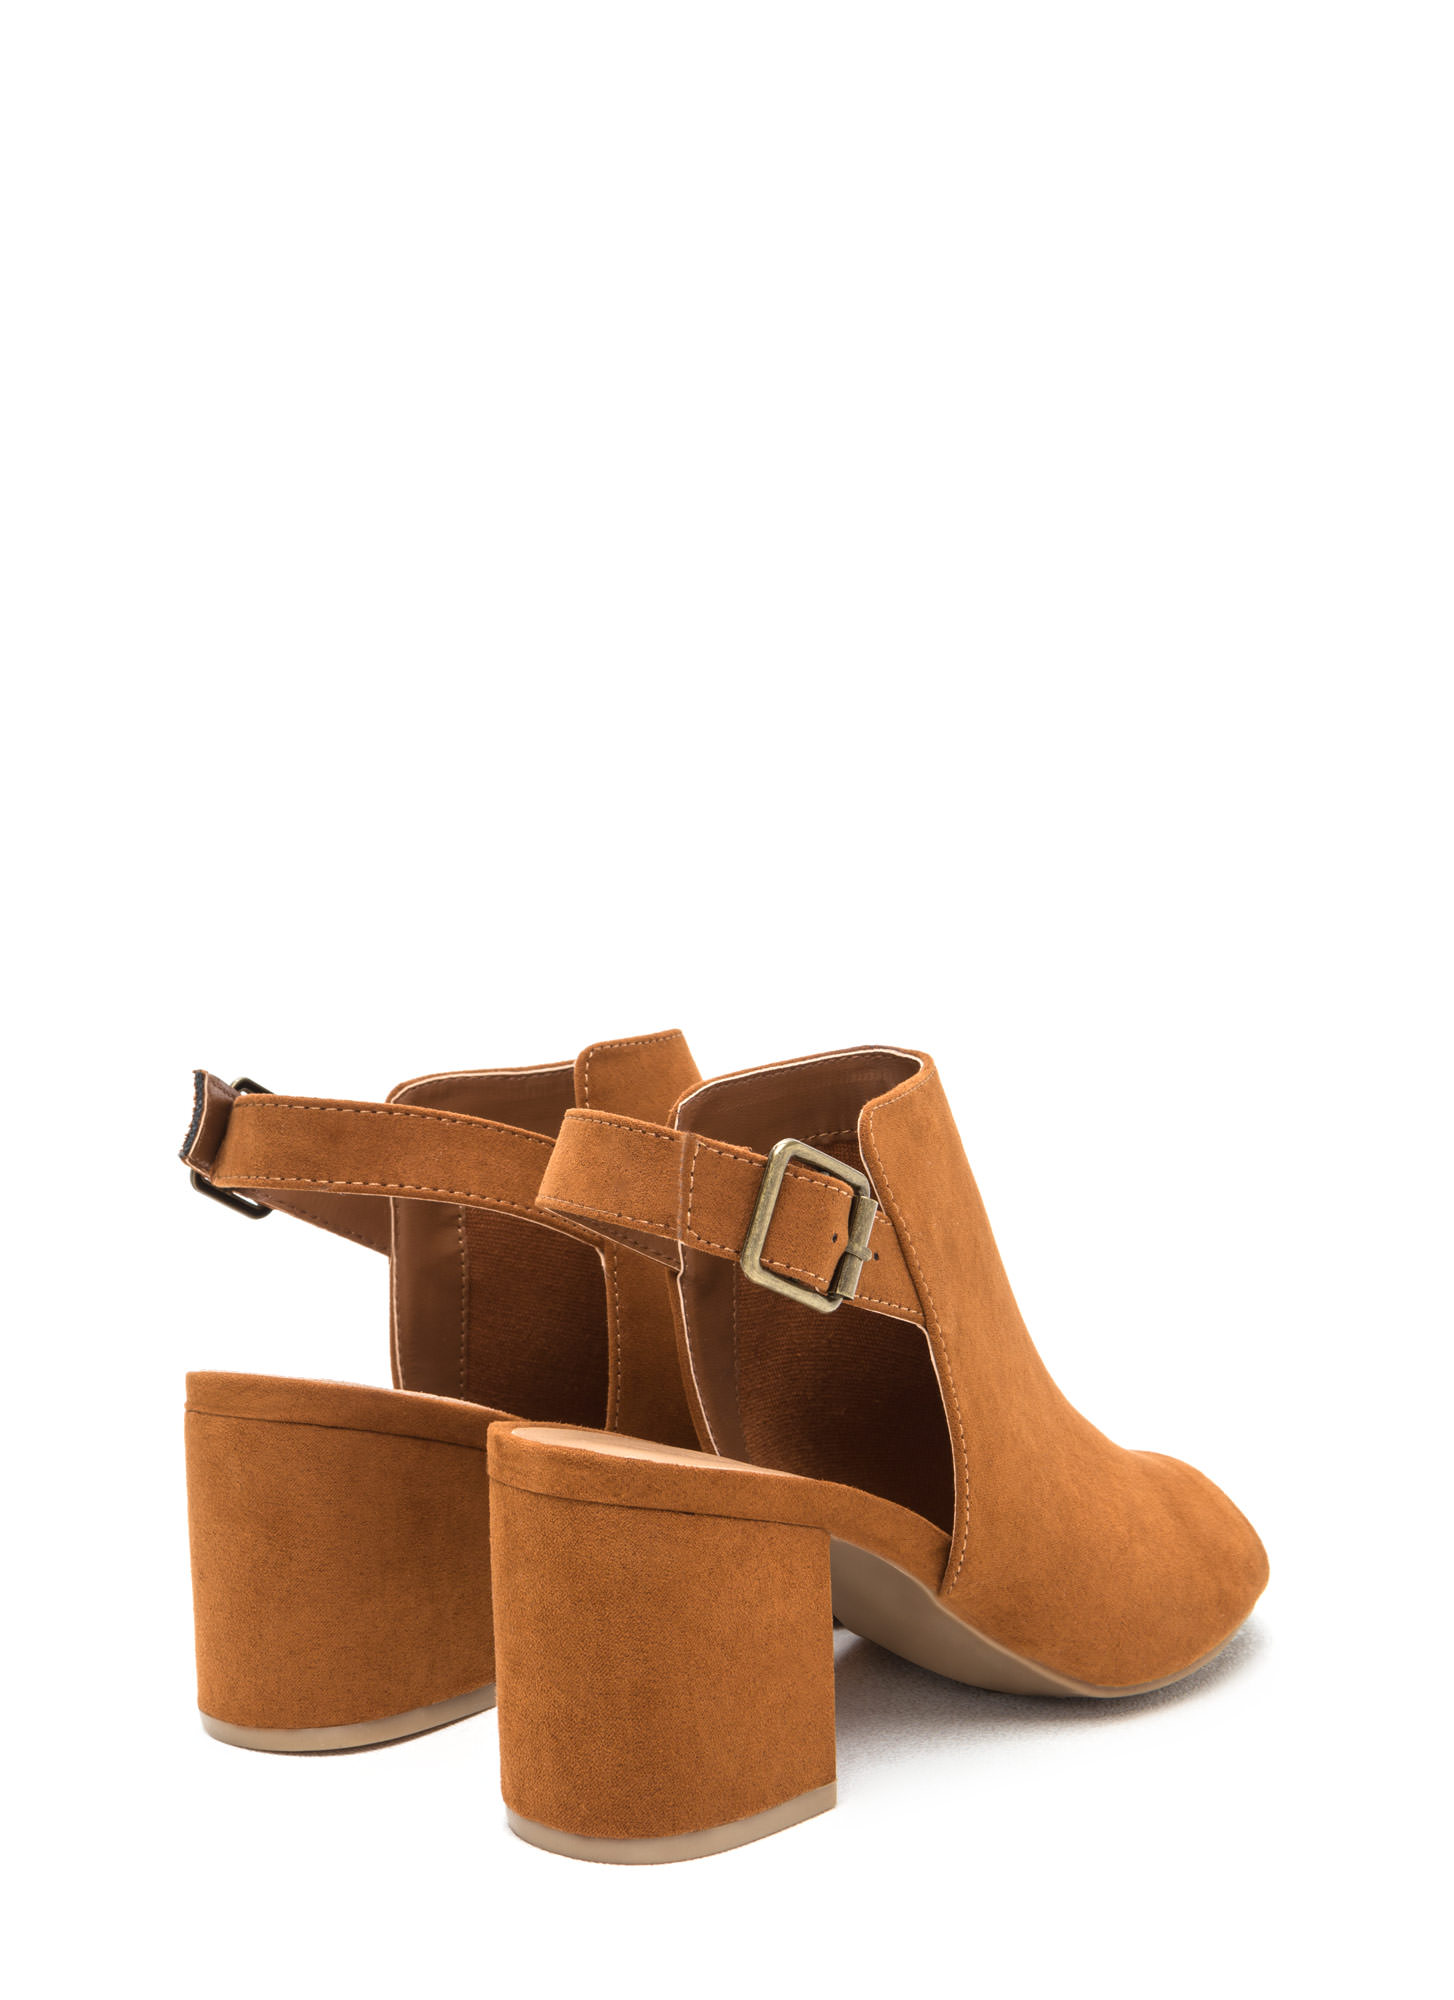 All Smiles Faux Suede Chunky Heels CHESTNUT